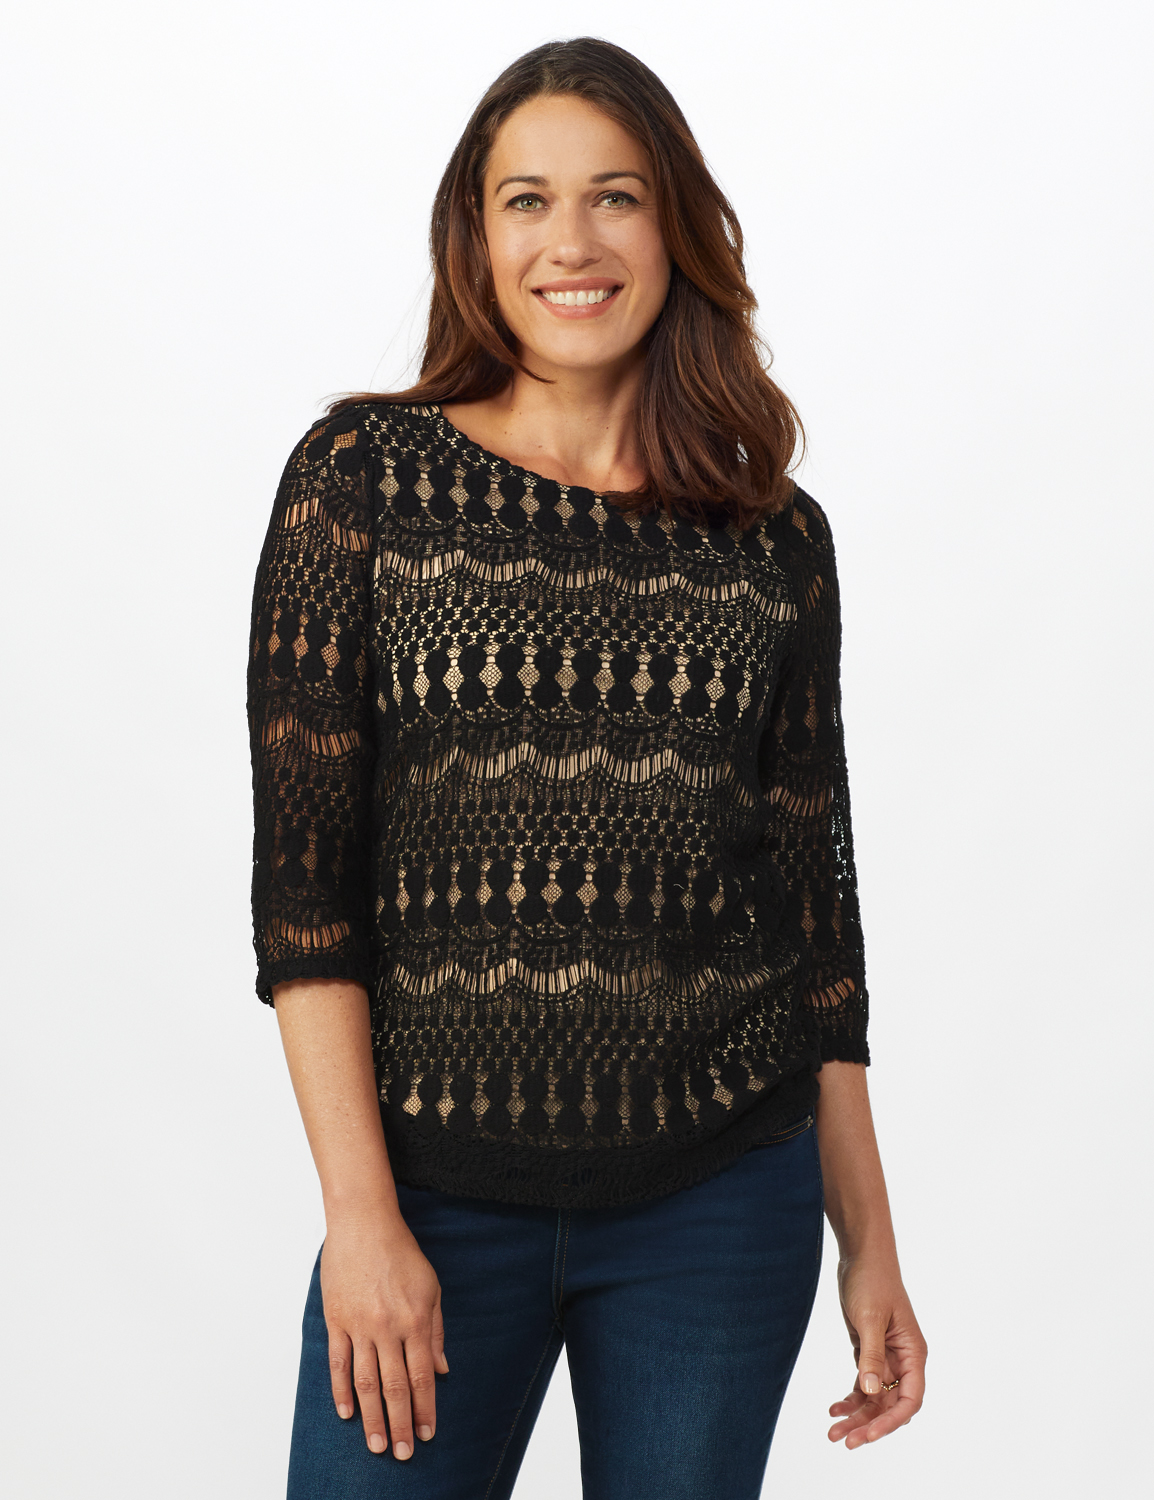 Lined Lace Knit Top -Black/Nude - Front